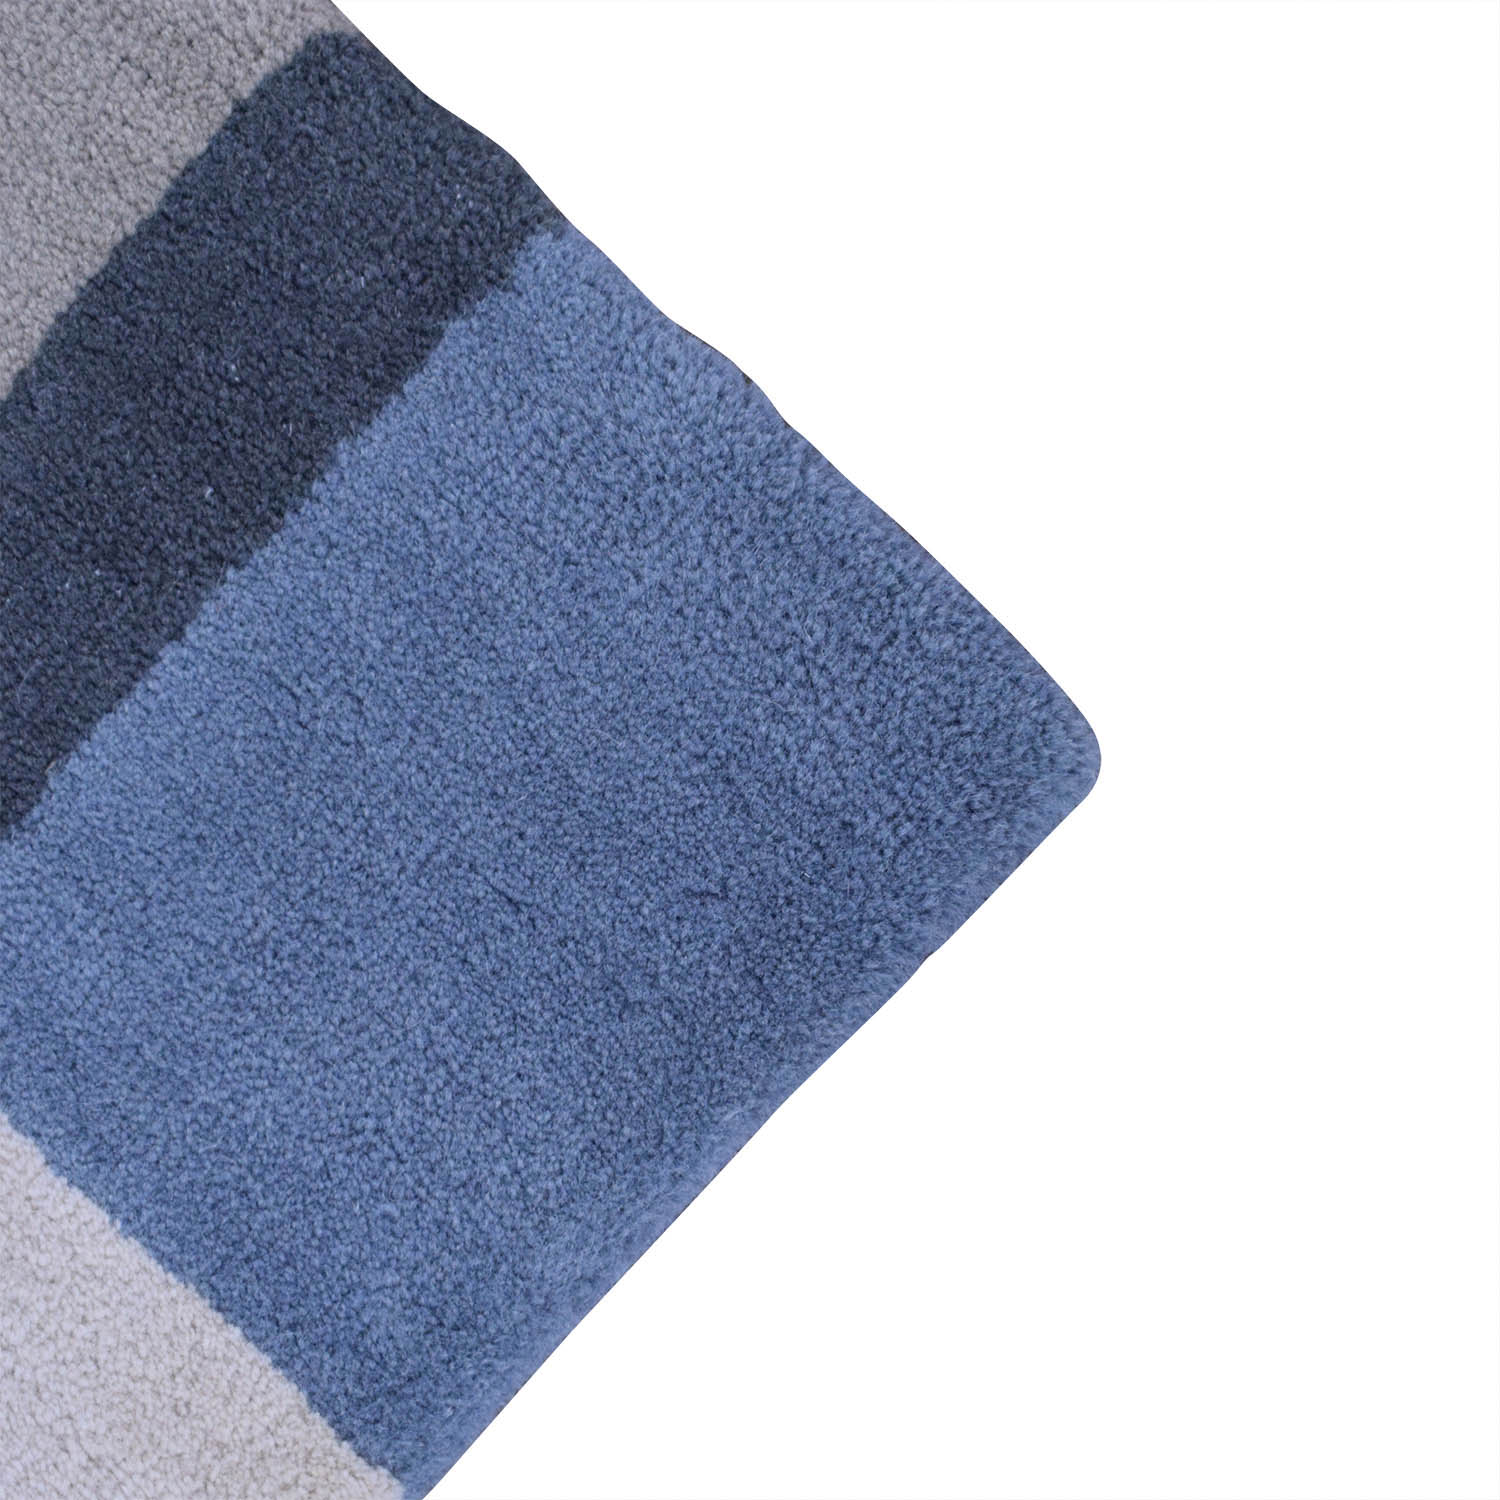 shop Crate & Barrel Crate & Barrel Sukicheema City Grey Rug online